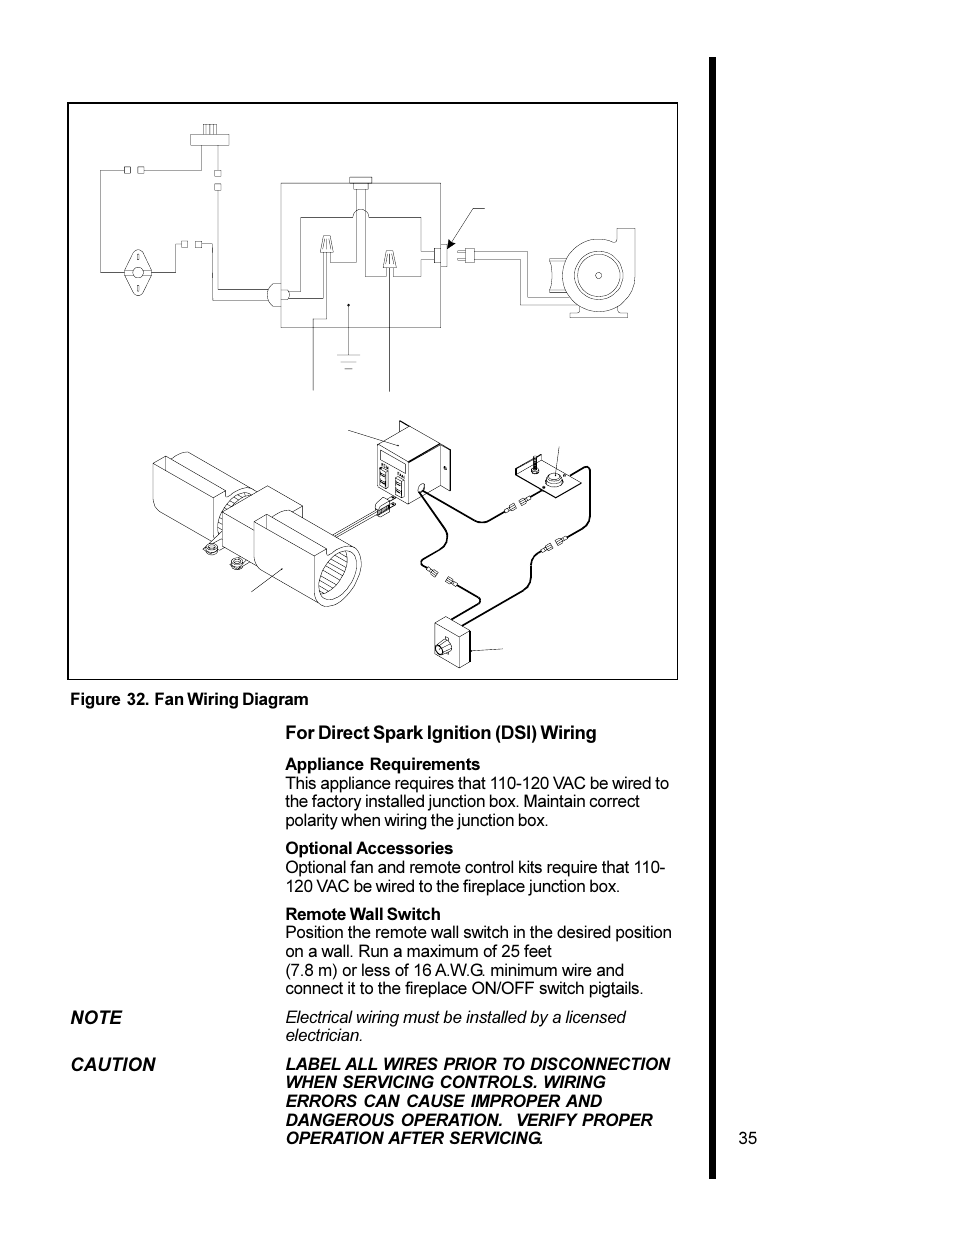 wiring diagram for a gas fireplace blower read all wiring diagram Fireplace Fan Wiring Diagram